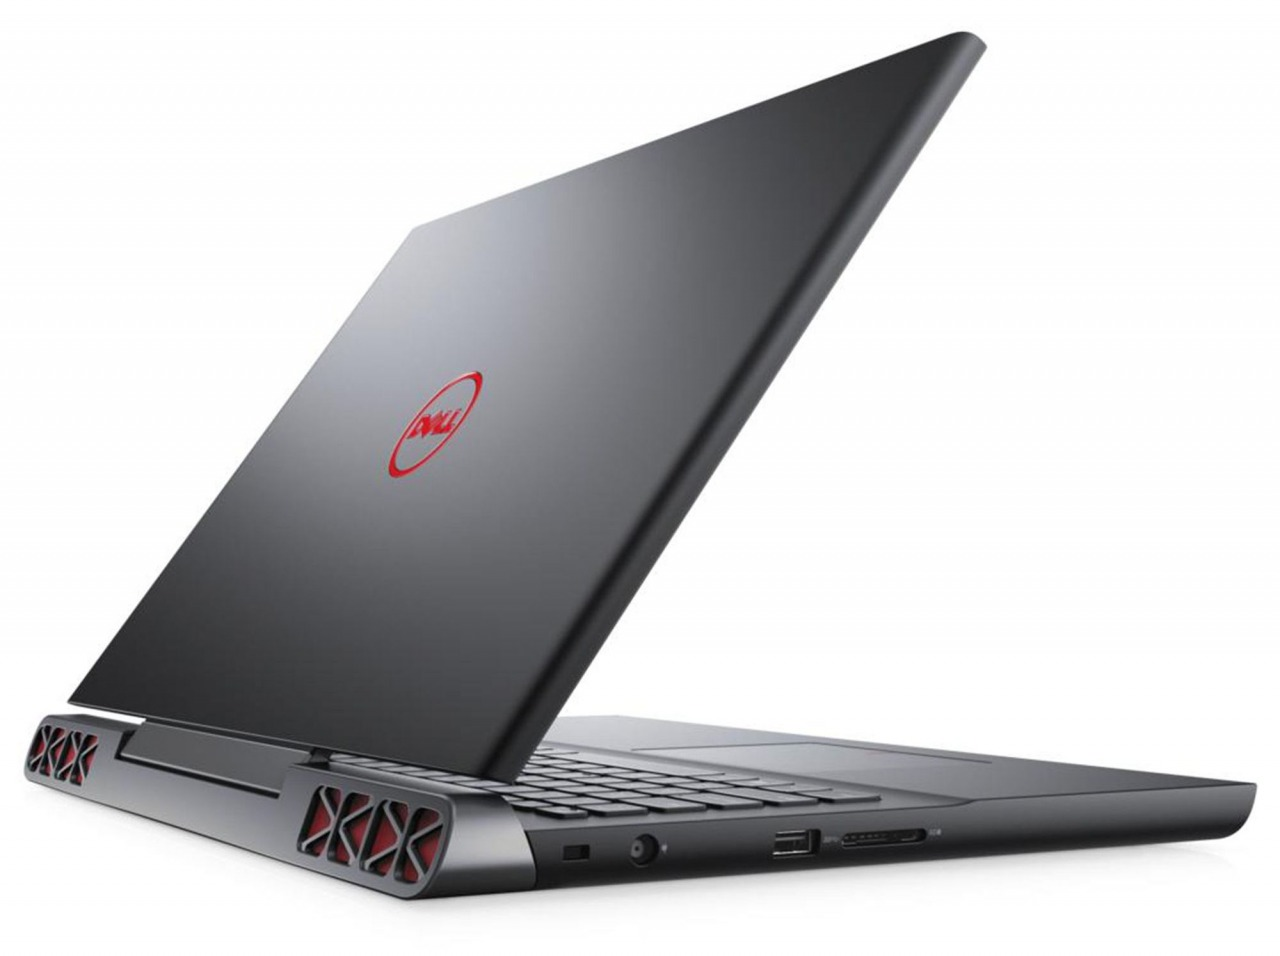 dell inspiron gaming 7567_3.jpg